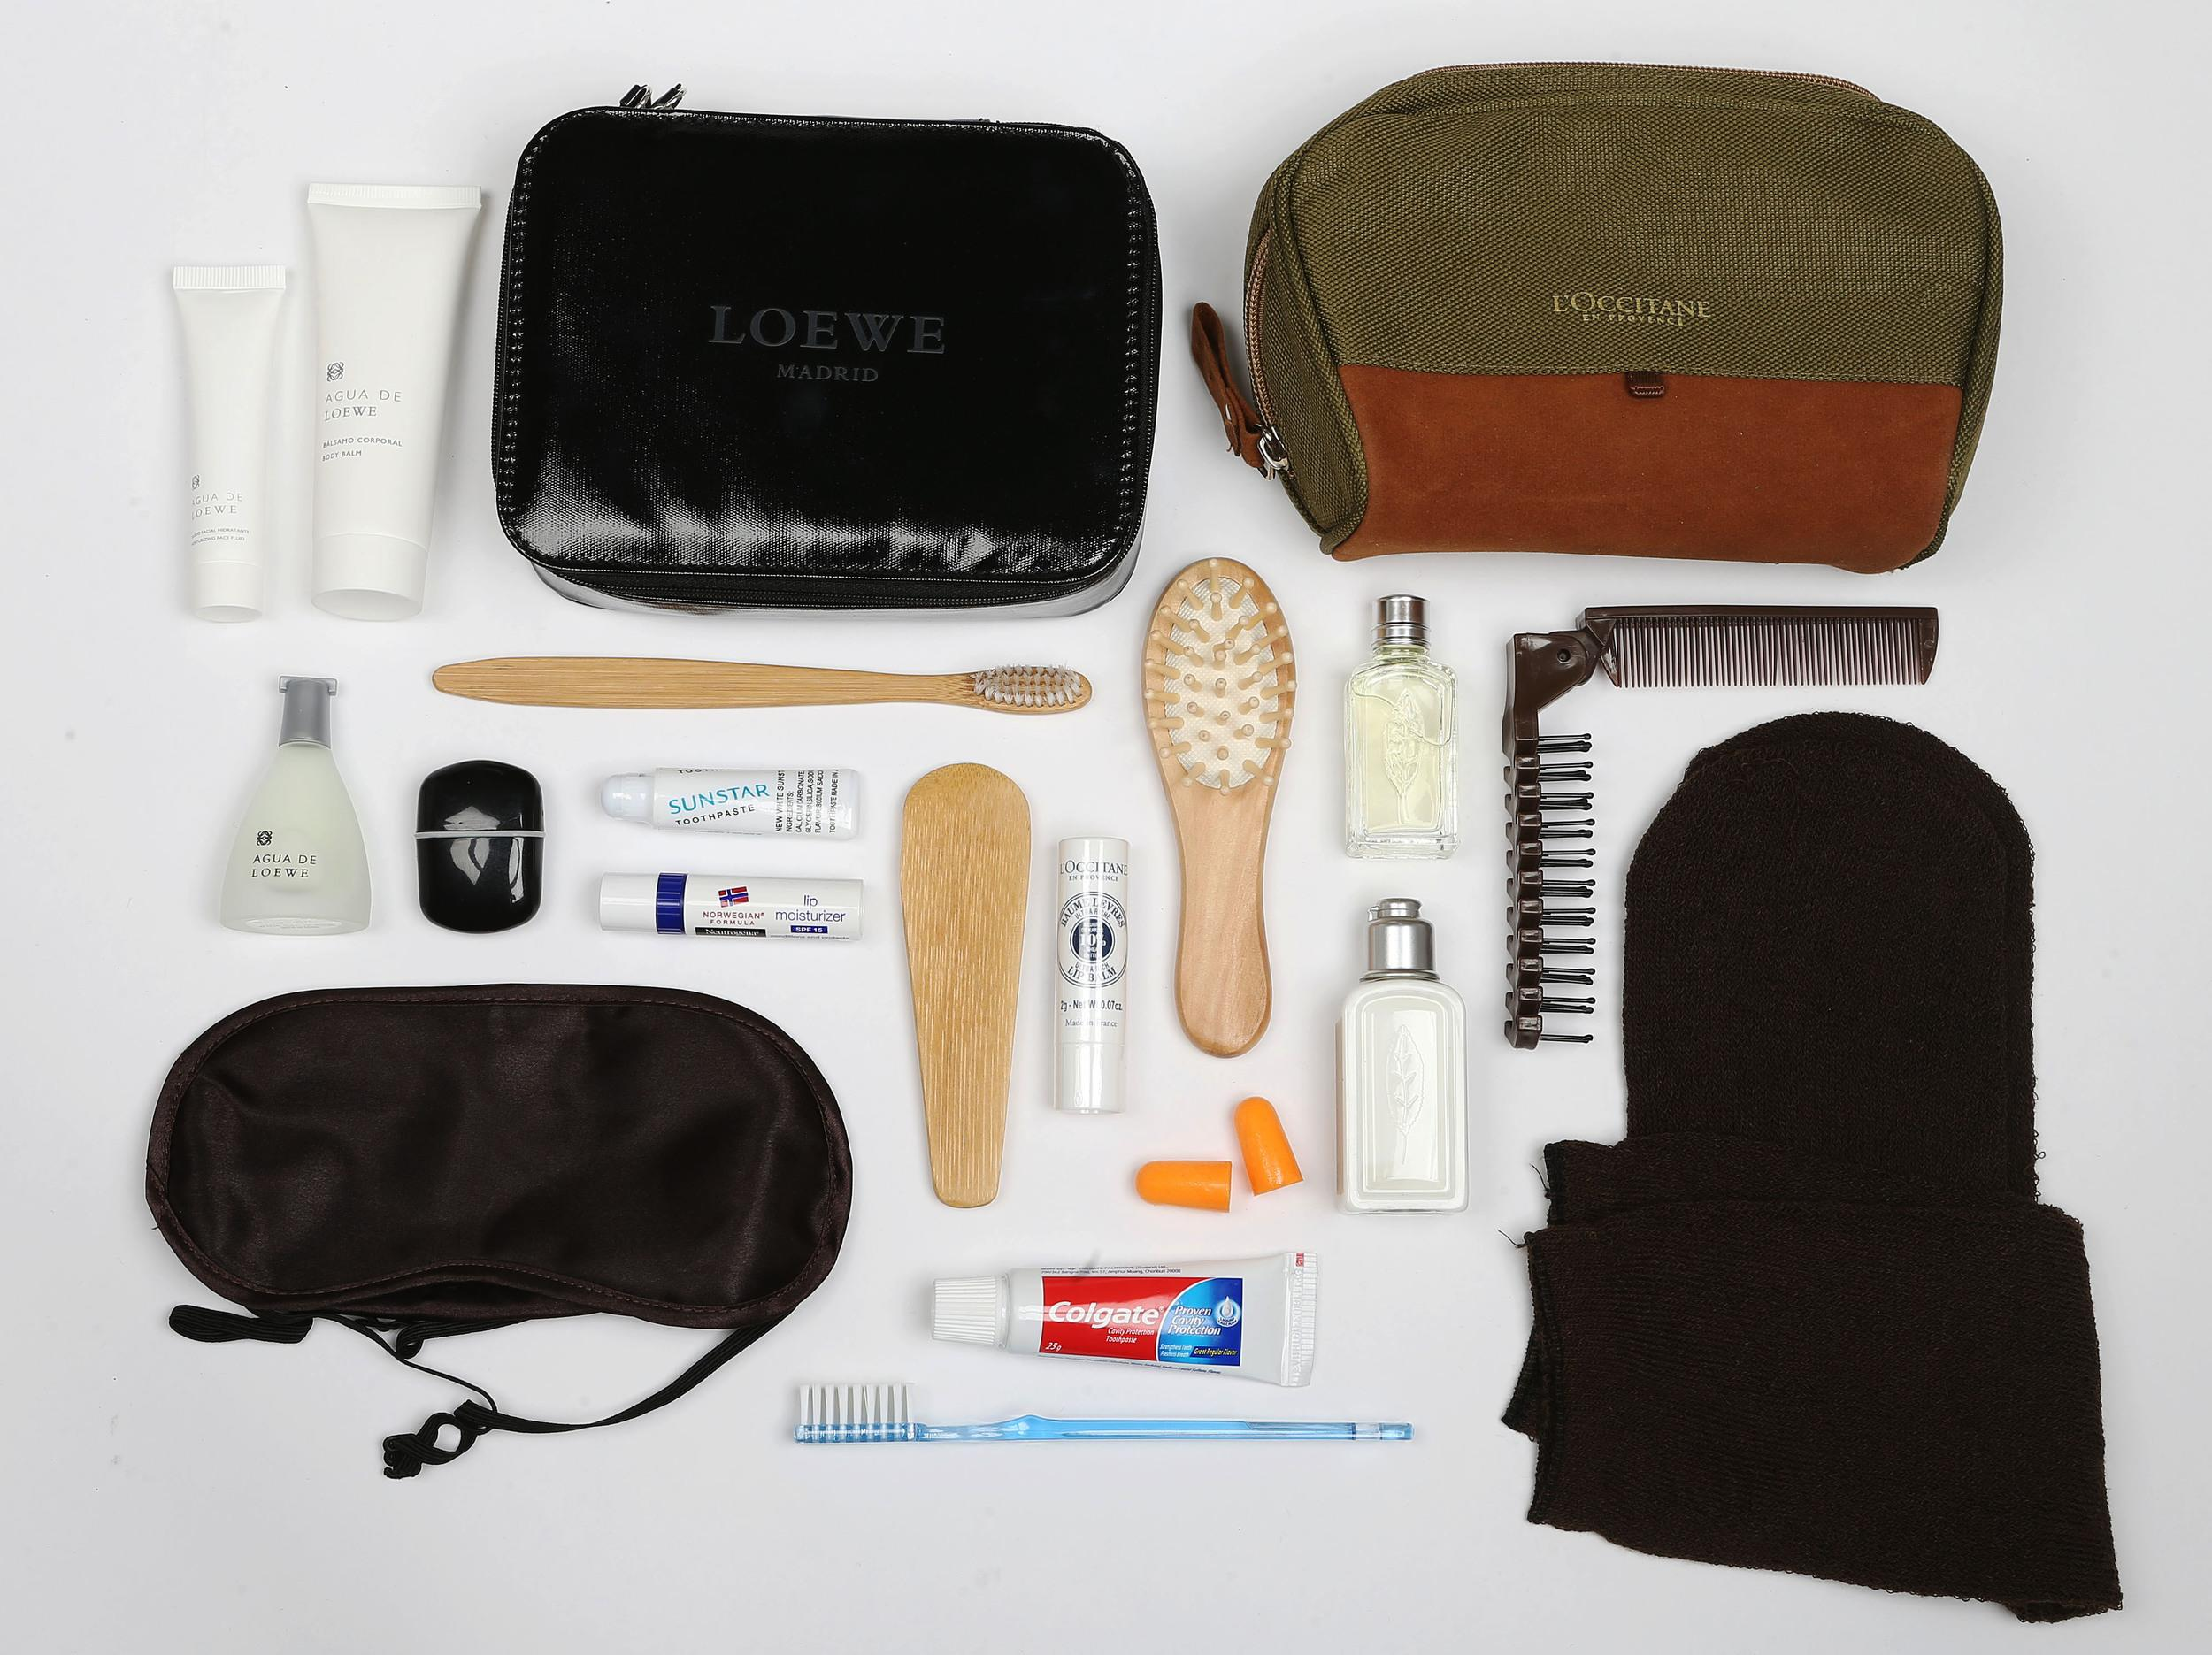 <p><strong>What do you get?</strong> First Class: Deluxe products that have a touch of the rain forest about them. Wooden accessories with an Eco element - hairbrush, shoe horn, toothbrush, dental flossing stick, toothpaste, body balm, moisturising face fluid, eau de toilette, lip balm, black silk eye mask, ear plugs<br /> Business Class: Verbena-infused L'Occitane cosmetics (eau de toilette, lip balm and body lotion), foldable brush/comb, toothbrush, toothpaste, pair of socks, eye mask, ear plugs</p>